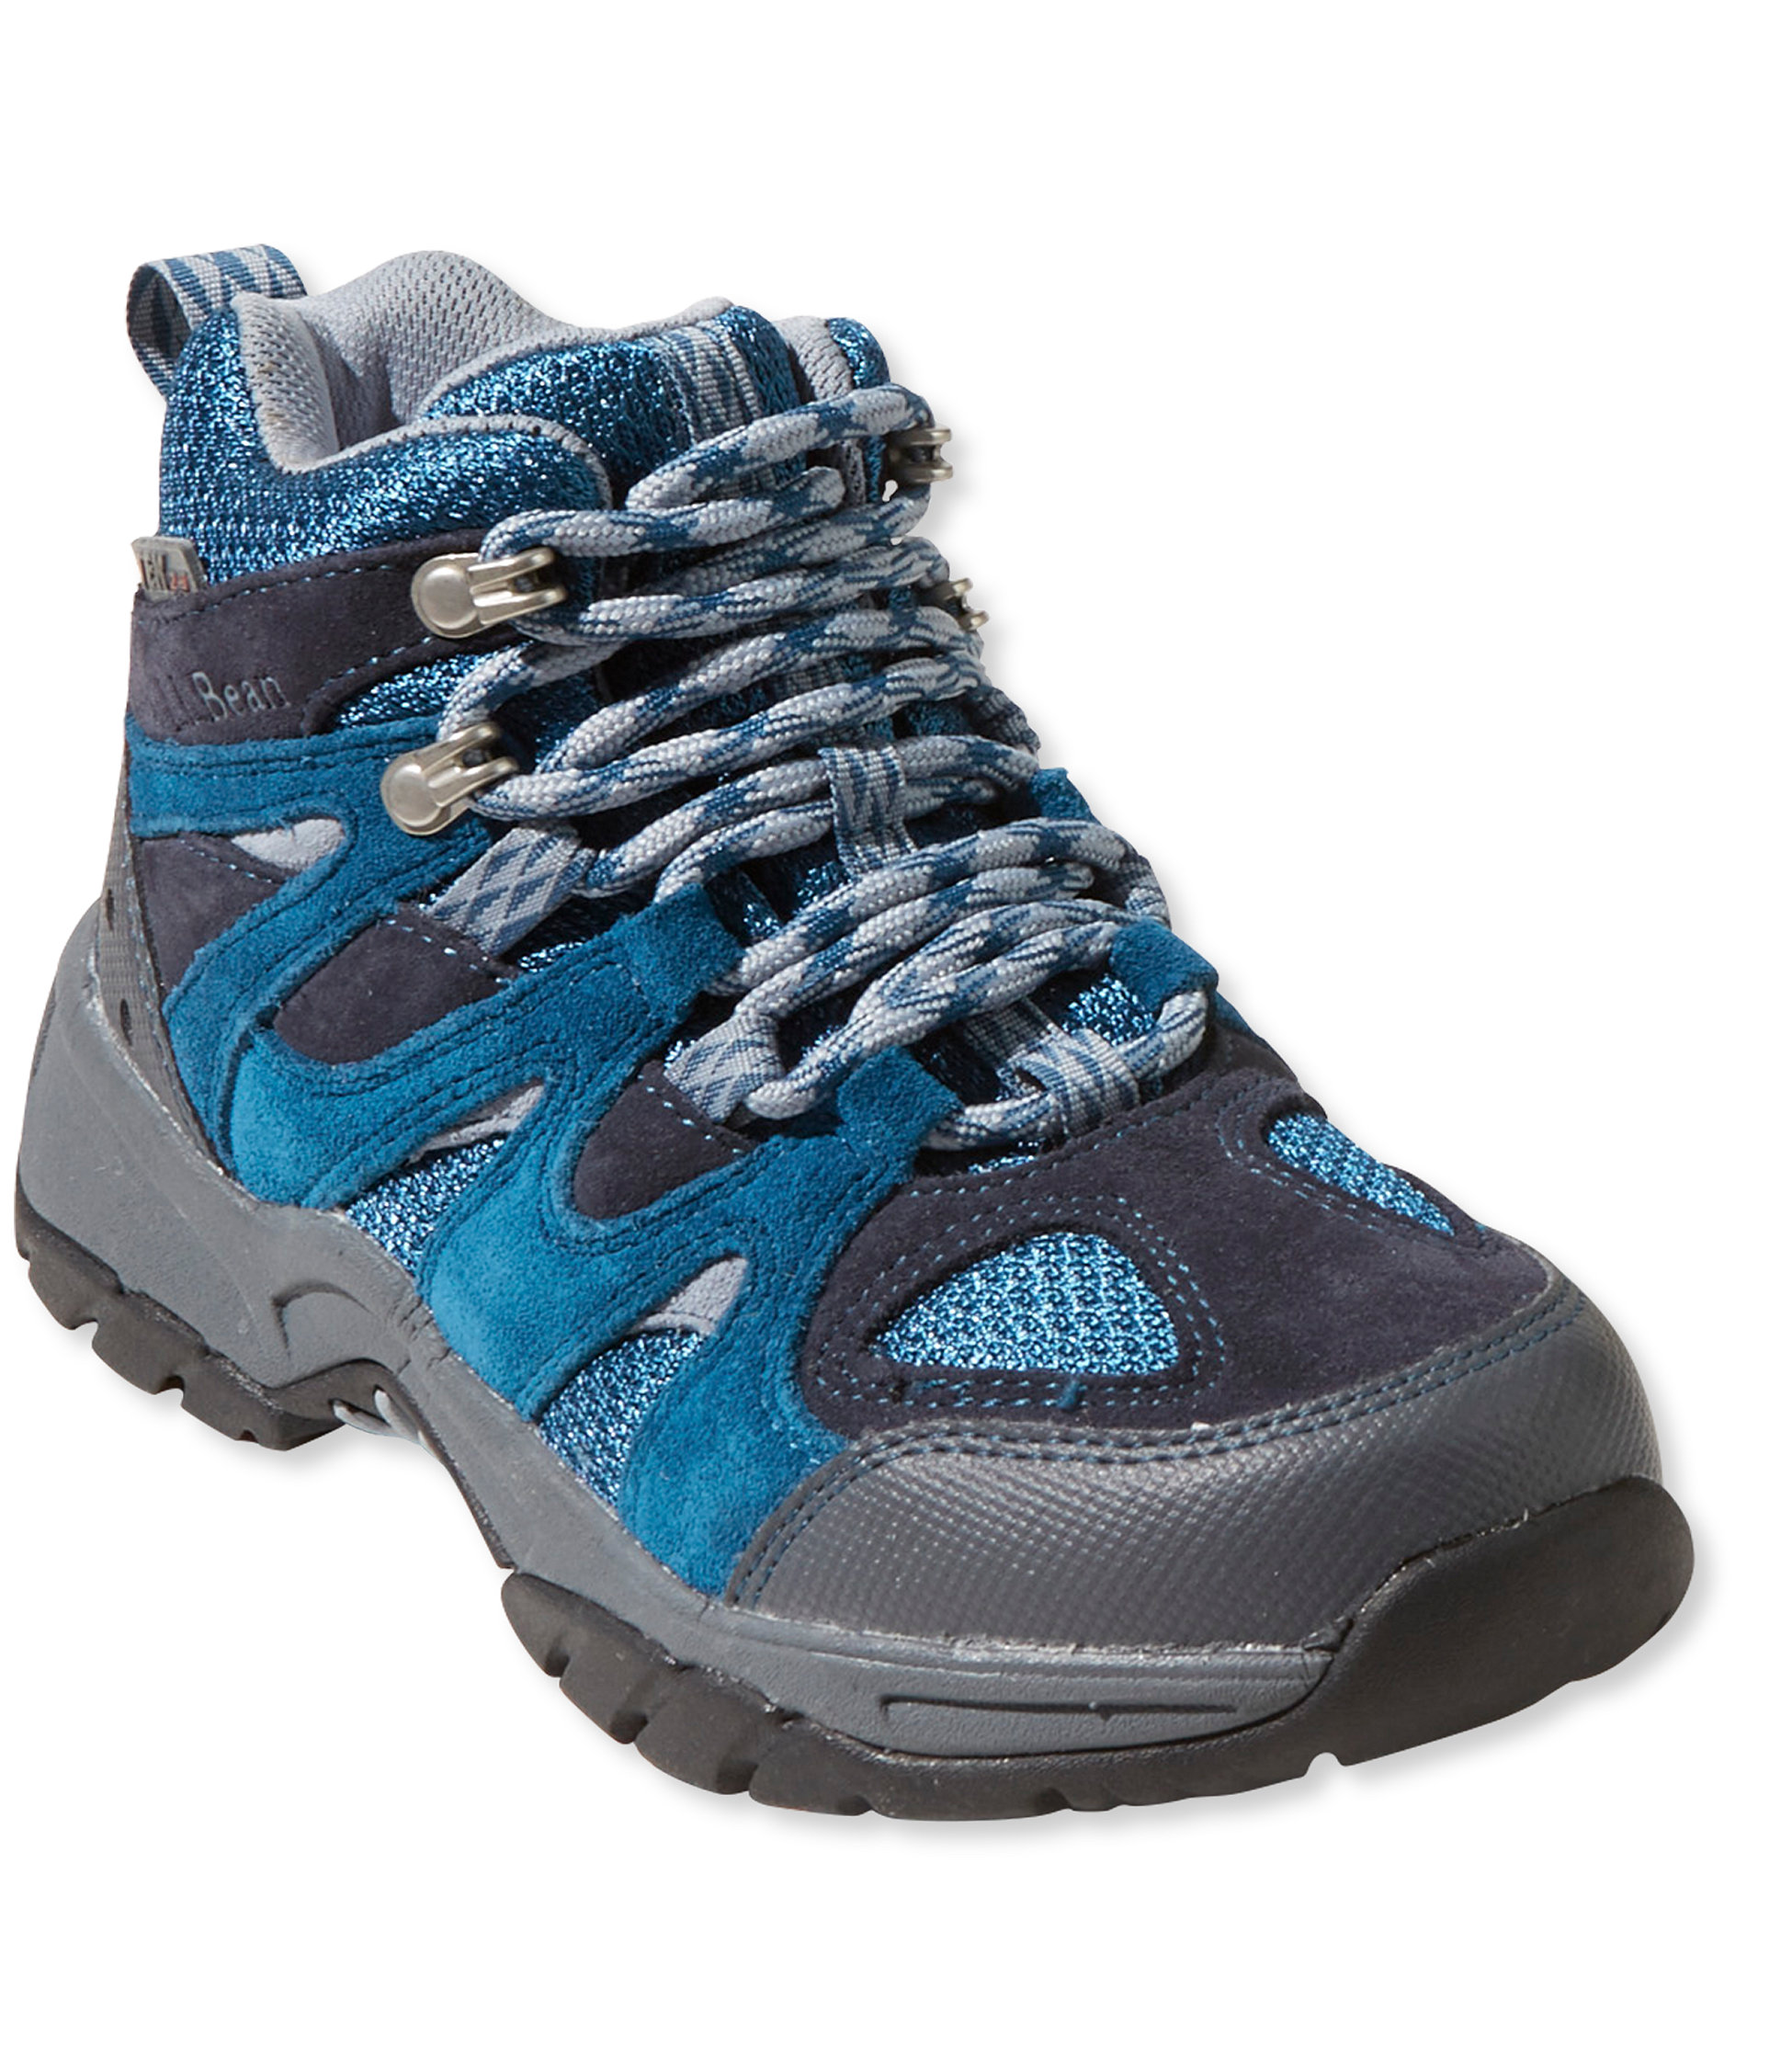 L.L.Bean Waterproof Trail Model Hikers